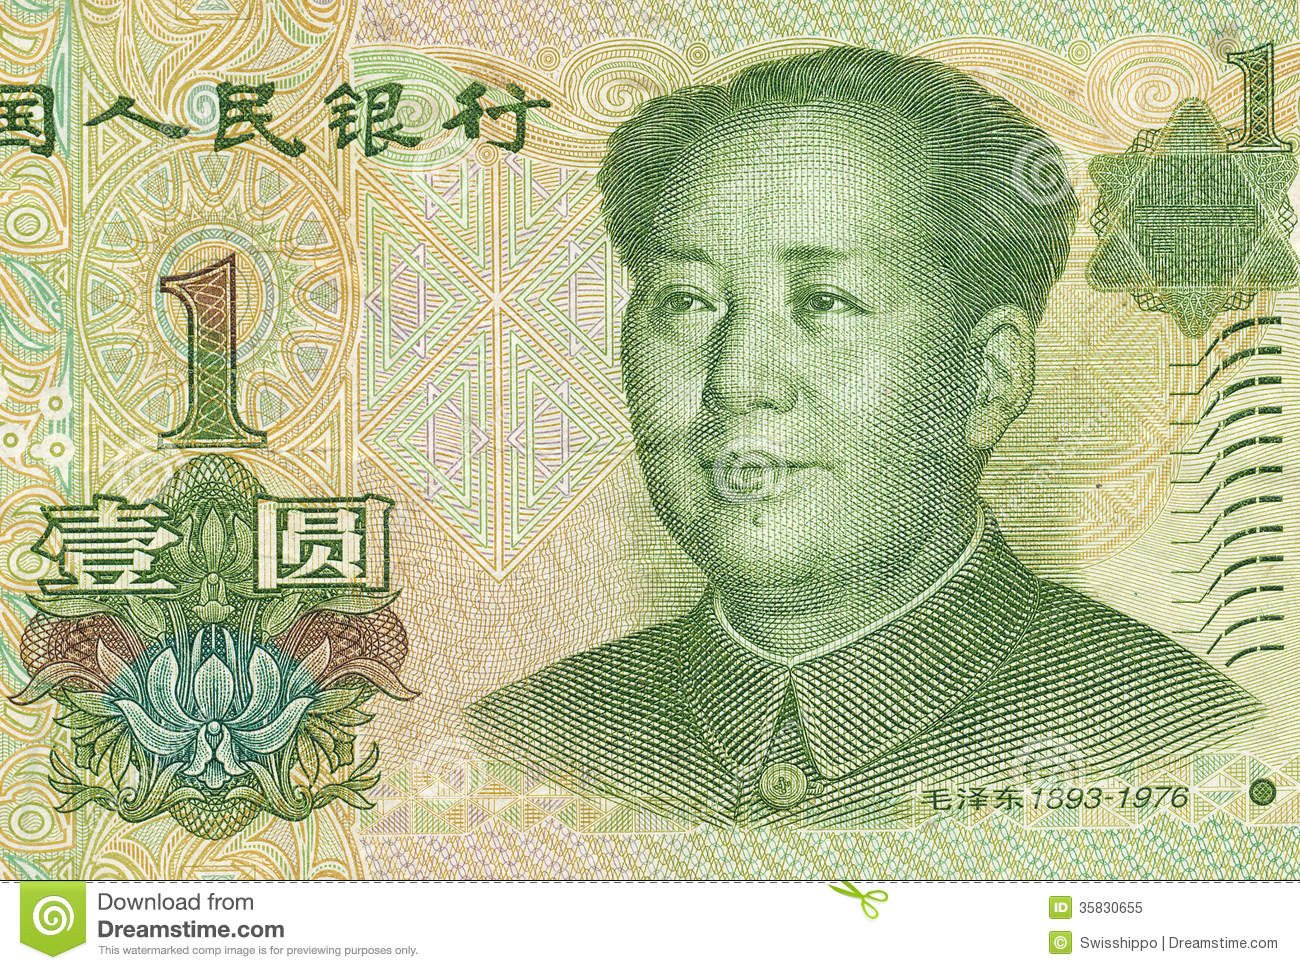 how to say dollar in chinese